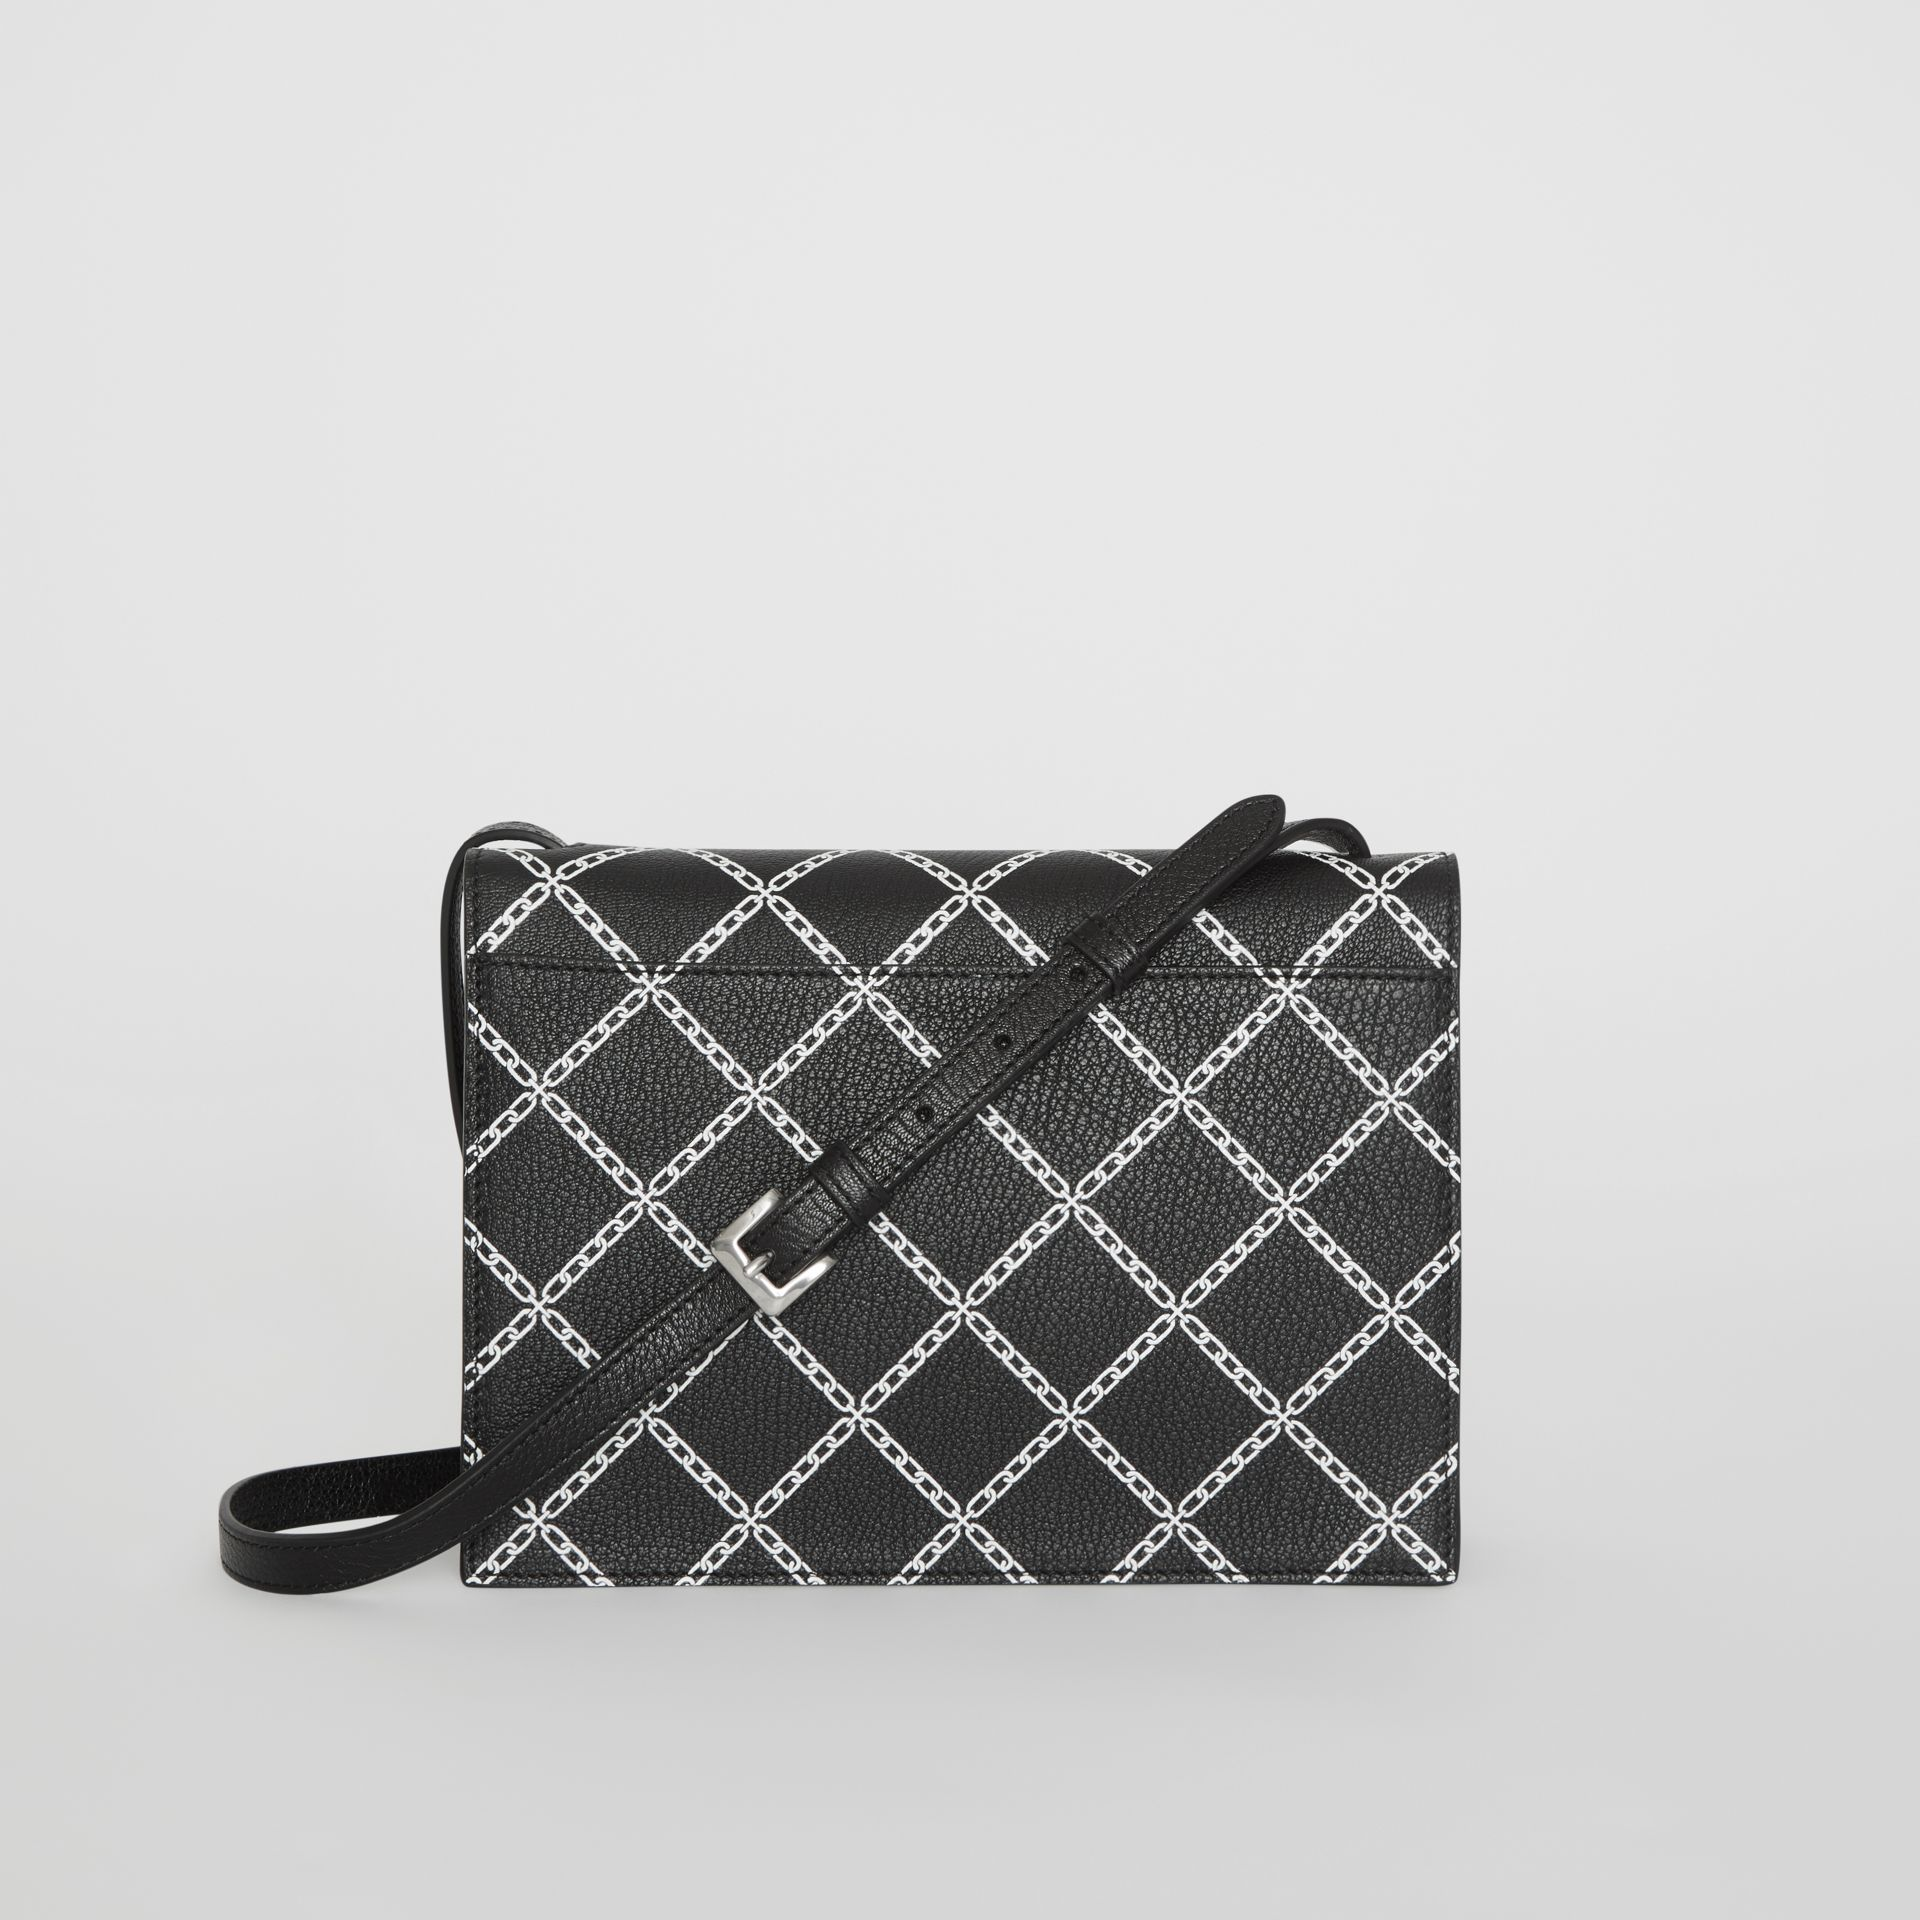 Small Link Print Leather Crossbody Bag in Black - Women | Burberry - gallery image 7